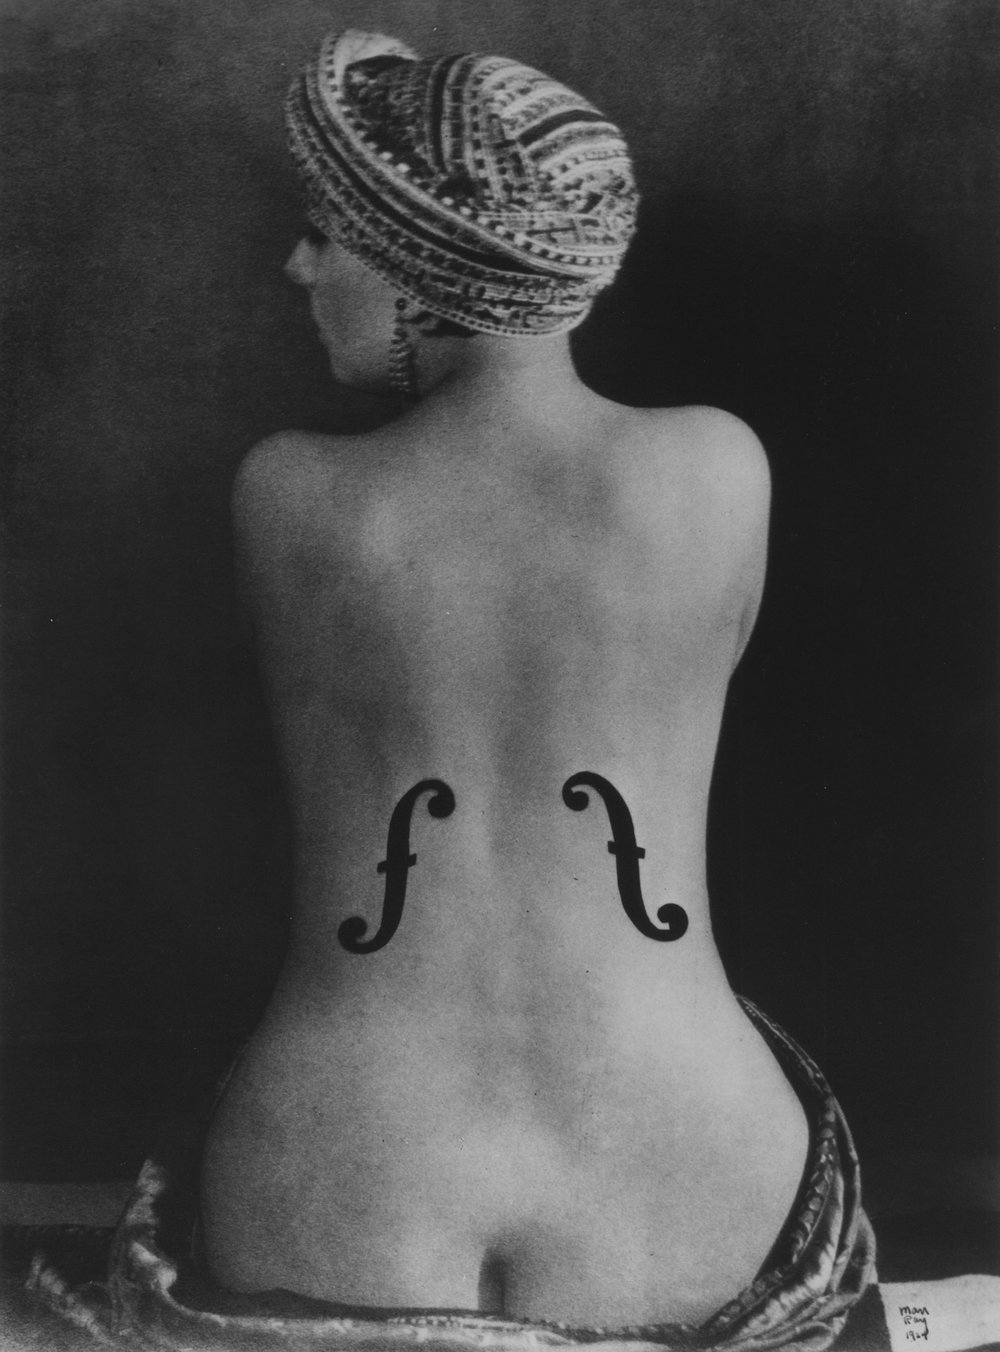 Man Ray  Violon d'Ingres, 1924 (1990) Courtesy Galerie Johannes Faber © MAN RAY TRUST/Bildrecht, Wien, 2017/18